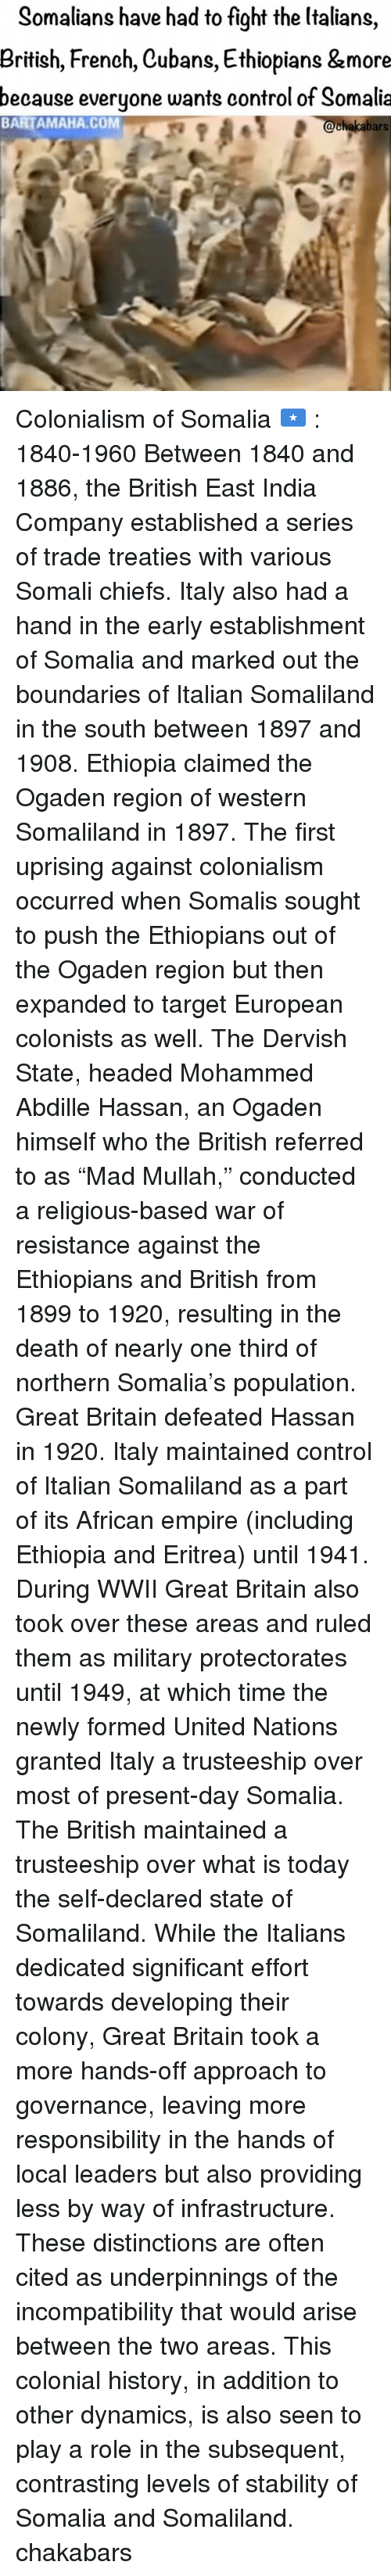 """Empire, Ethiopians, and Memes: Somalians have had to fight the Italians  British, French, Cubans, Ethiopians &more  because everyone wants control of Somalia  BARTAMAHA, COM  chakabars Colonialism of Somalia 🇸🇴 : 1840-1960 Between 1840 and 1886, the British East India Company established a series of trade treaties with various Somali chiefs. Italy also had a hand in the early establishment of Somalia and marked out the boundaries of Italian Somaliland in the south between 1897 and 1908. Ethiopia claimed the Ogaden region of western Somaliland in 1897. The first uprising against colonialism occurred when Somalis sought to push the Ethiopians out of the Ogaden region but then expanded to target European colonists as well. The Dervish State, headed Mohammed Abdille Hassan, an Ogaden himself who the British referred to as """"Mad Mullah,"""" conducted a religious-based war of resistance against the Ethiopians and British from 1899 to 1920, resulting in the death of nearly one third of northern Somalia's population. Great Britain defeated Hassan in 1920. Italy maintained control of Italian Somaliland as a part of its African empire (including Ethiopia and Eritrea) until 1941. During WWII Great Britain also took over these areas and ruled them as military protectorates until 1949, at which time the newly formed United Nations granted Italy a trusteeship over most of present-day Somalia. The British maintained a trusteeship over what is today the self-declared state of Somaliland. While the Italians dedicated significant effort towards developing their colony, Great Britain took a more hands-off approach to governance, leaving more responsibility in the hands of local leaders but also providing less by way of infrastructure. These distinctions are often cited as underpinnings of the incompatibility that would arise between the two areas. This colonial history, in addition to other dynamics, is also seen to play a role in the subsequent, contrasting levels of stability of Somalia"""